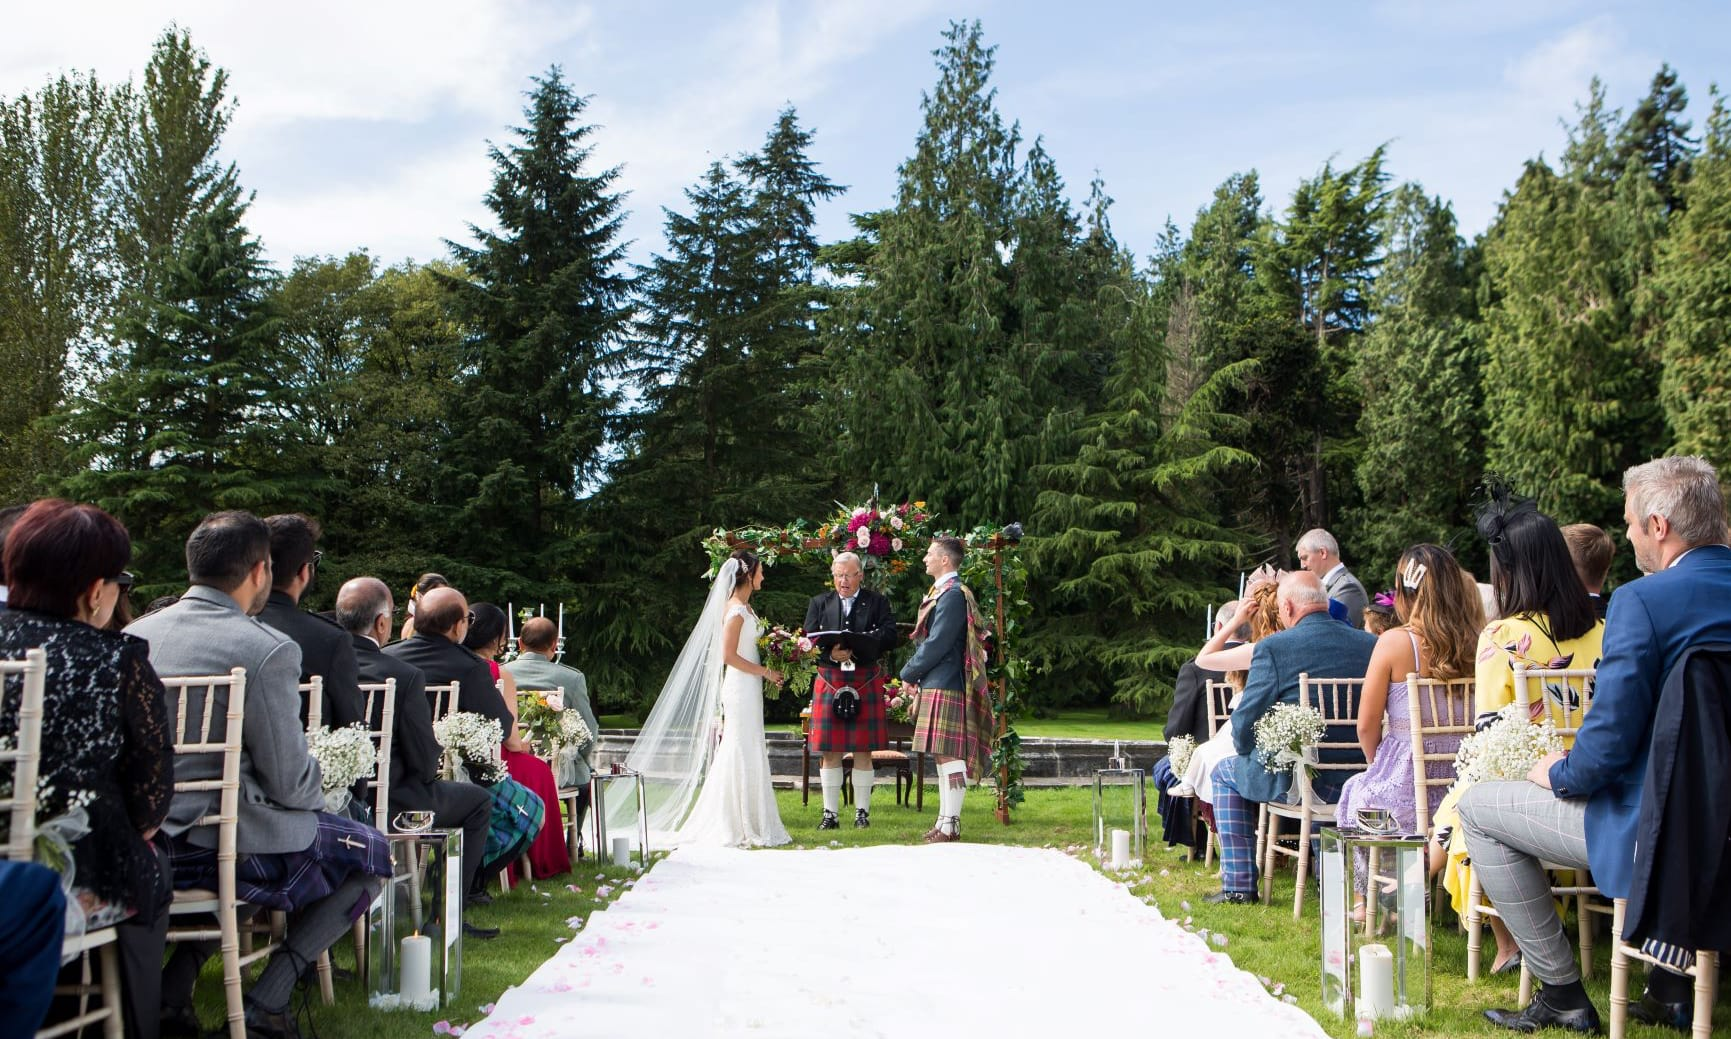 Get married in a Scottish castle